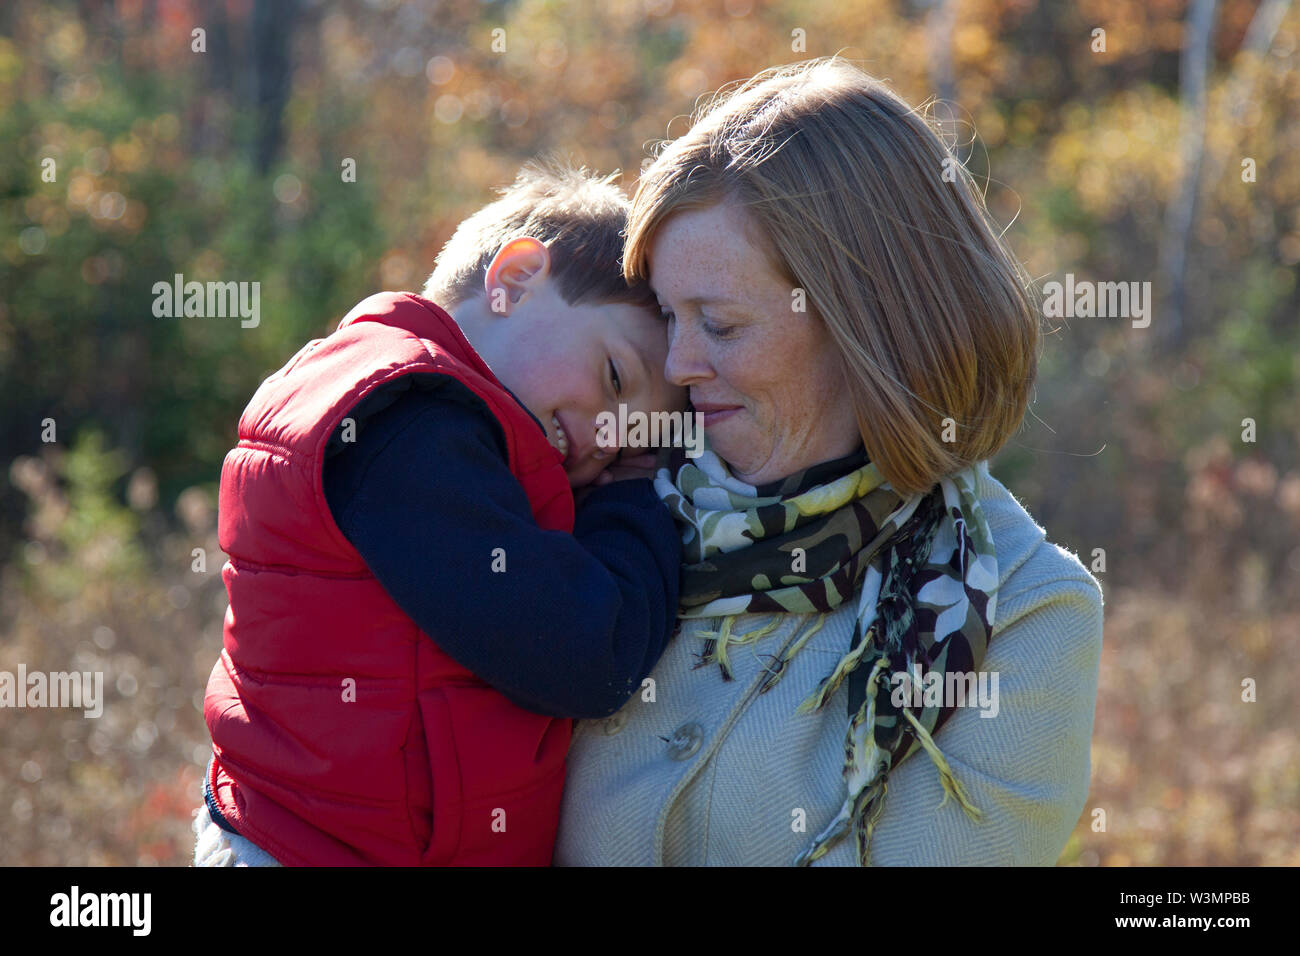 In the autumn leaves, a red haired mother holds her child close as he smiles into her shoulder - Stock Image